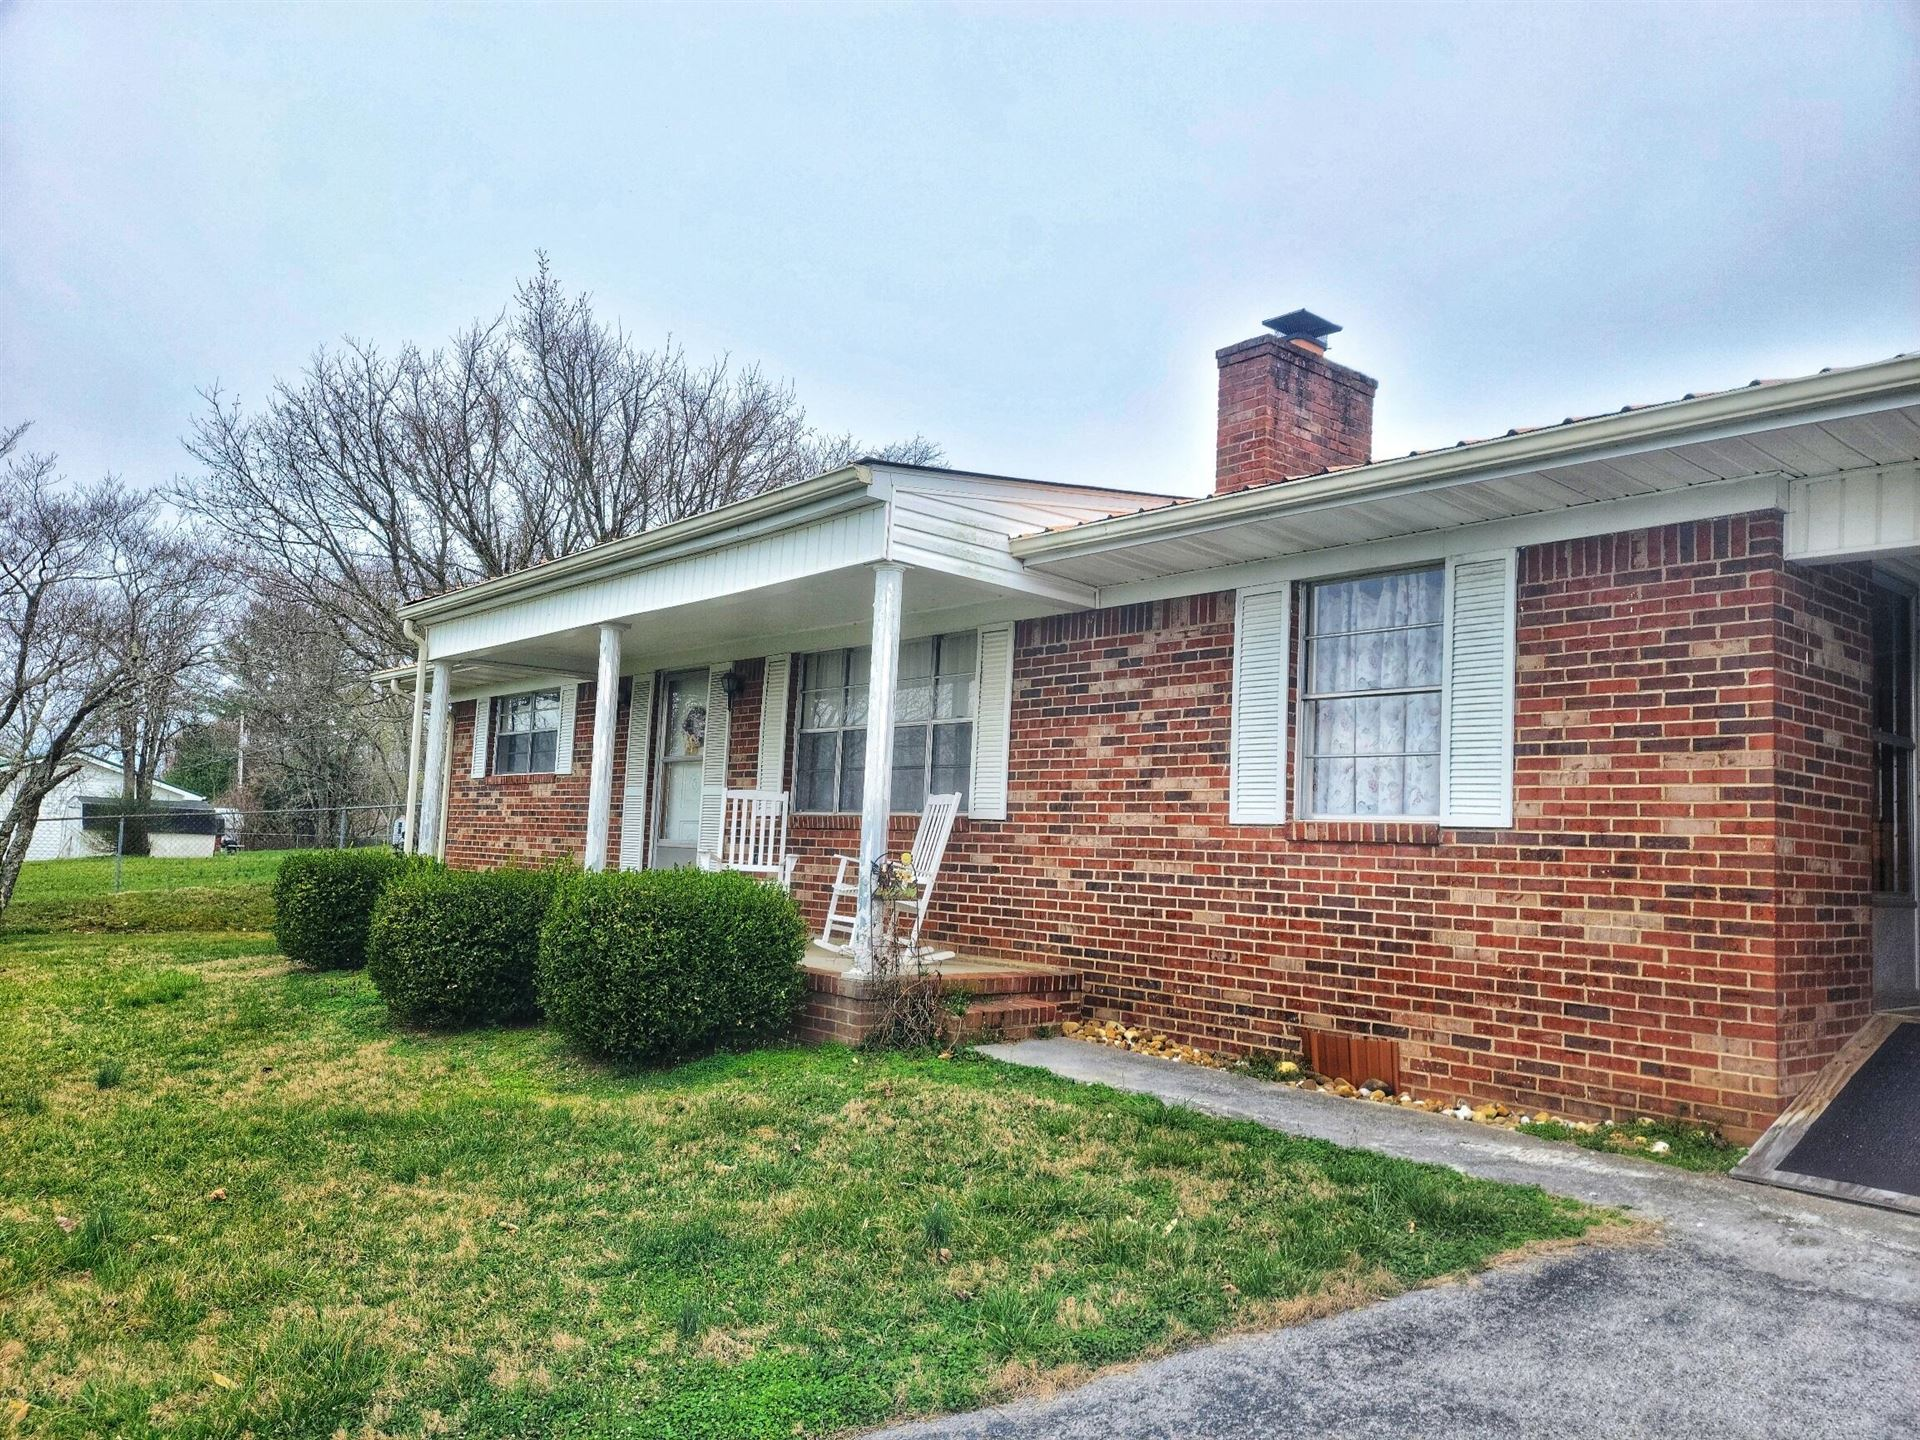 Photo of 222 Rose Dr Drive, Tazewell, TN 37879 (MLS # 9919745)